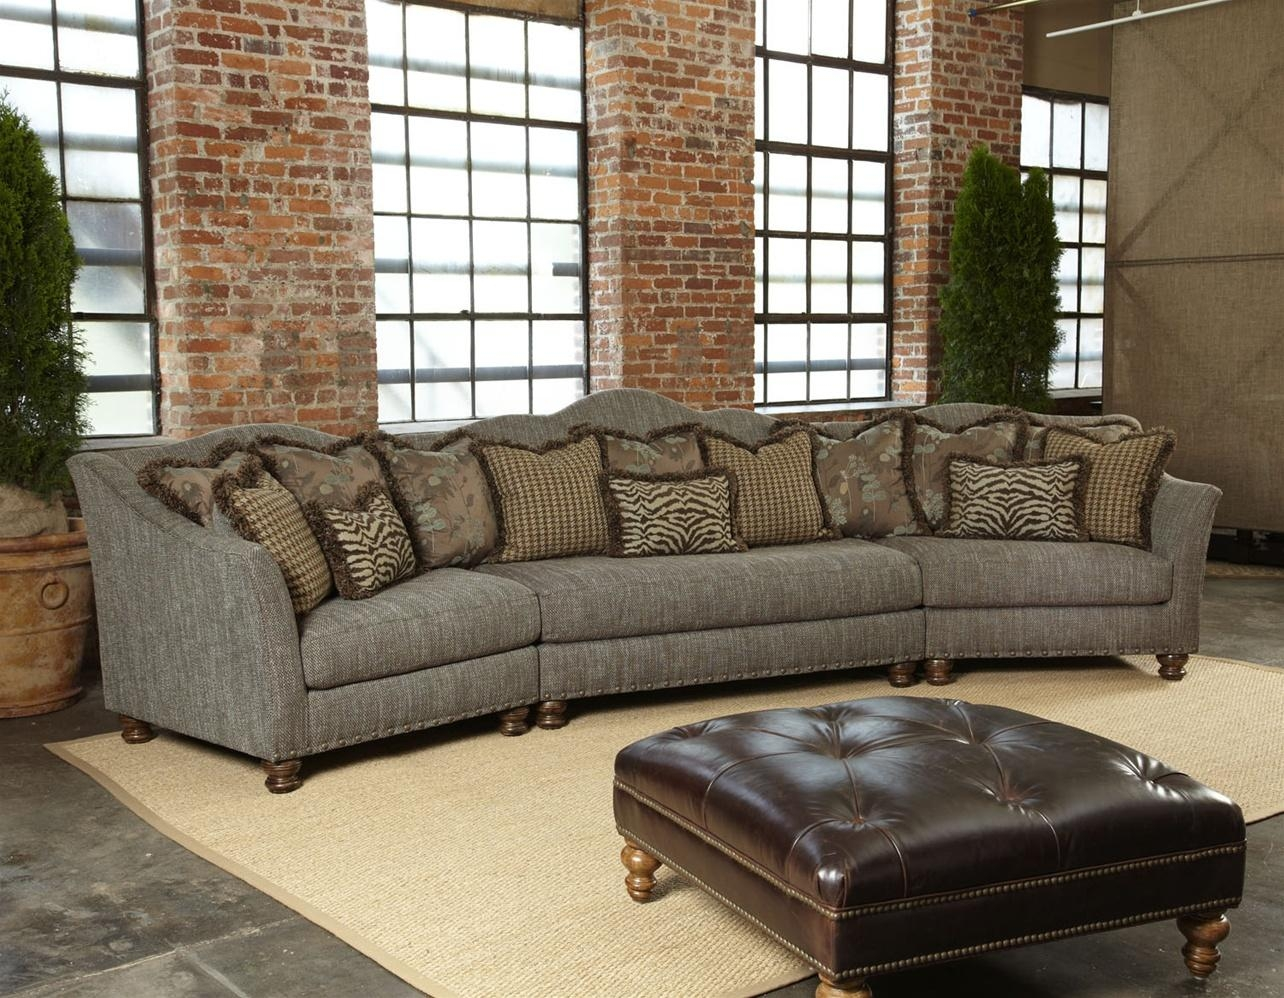 High Quality Sectional Sofa | Home Srg For High Quality Leather Sectional (View 2 of 20)